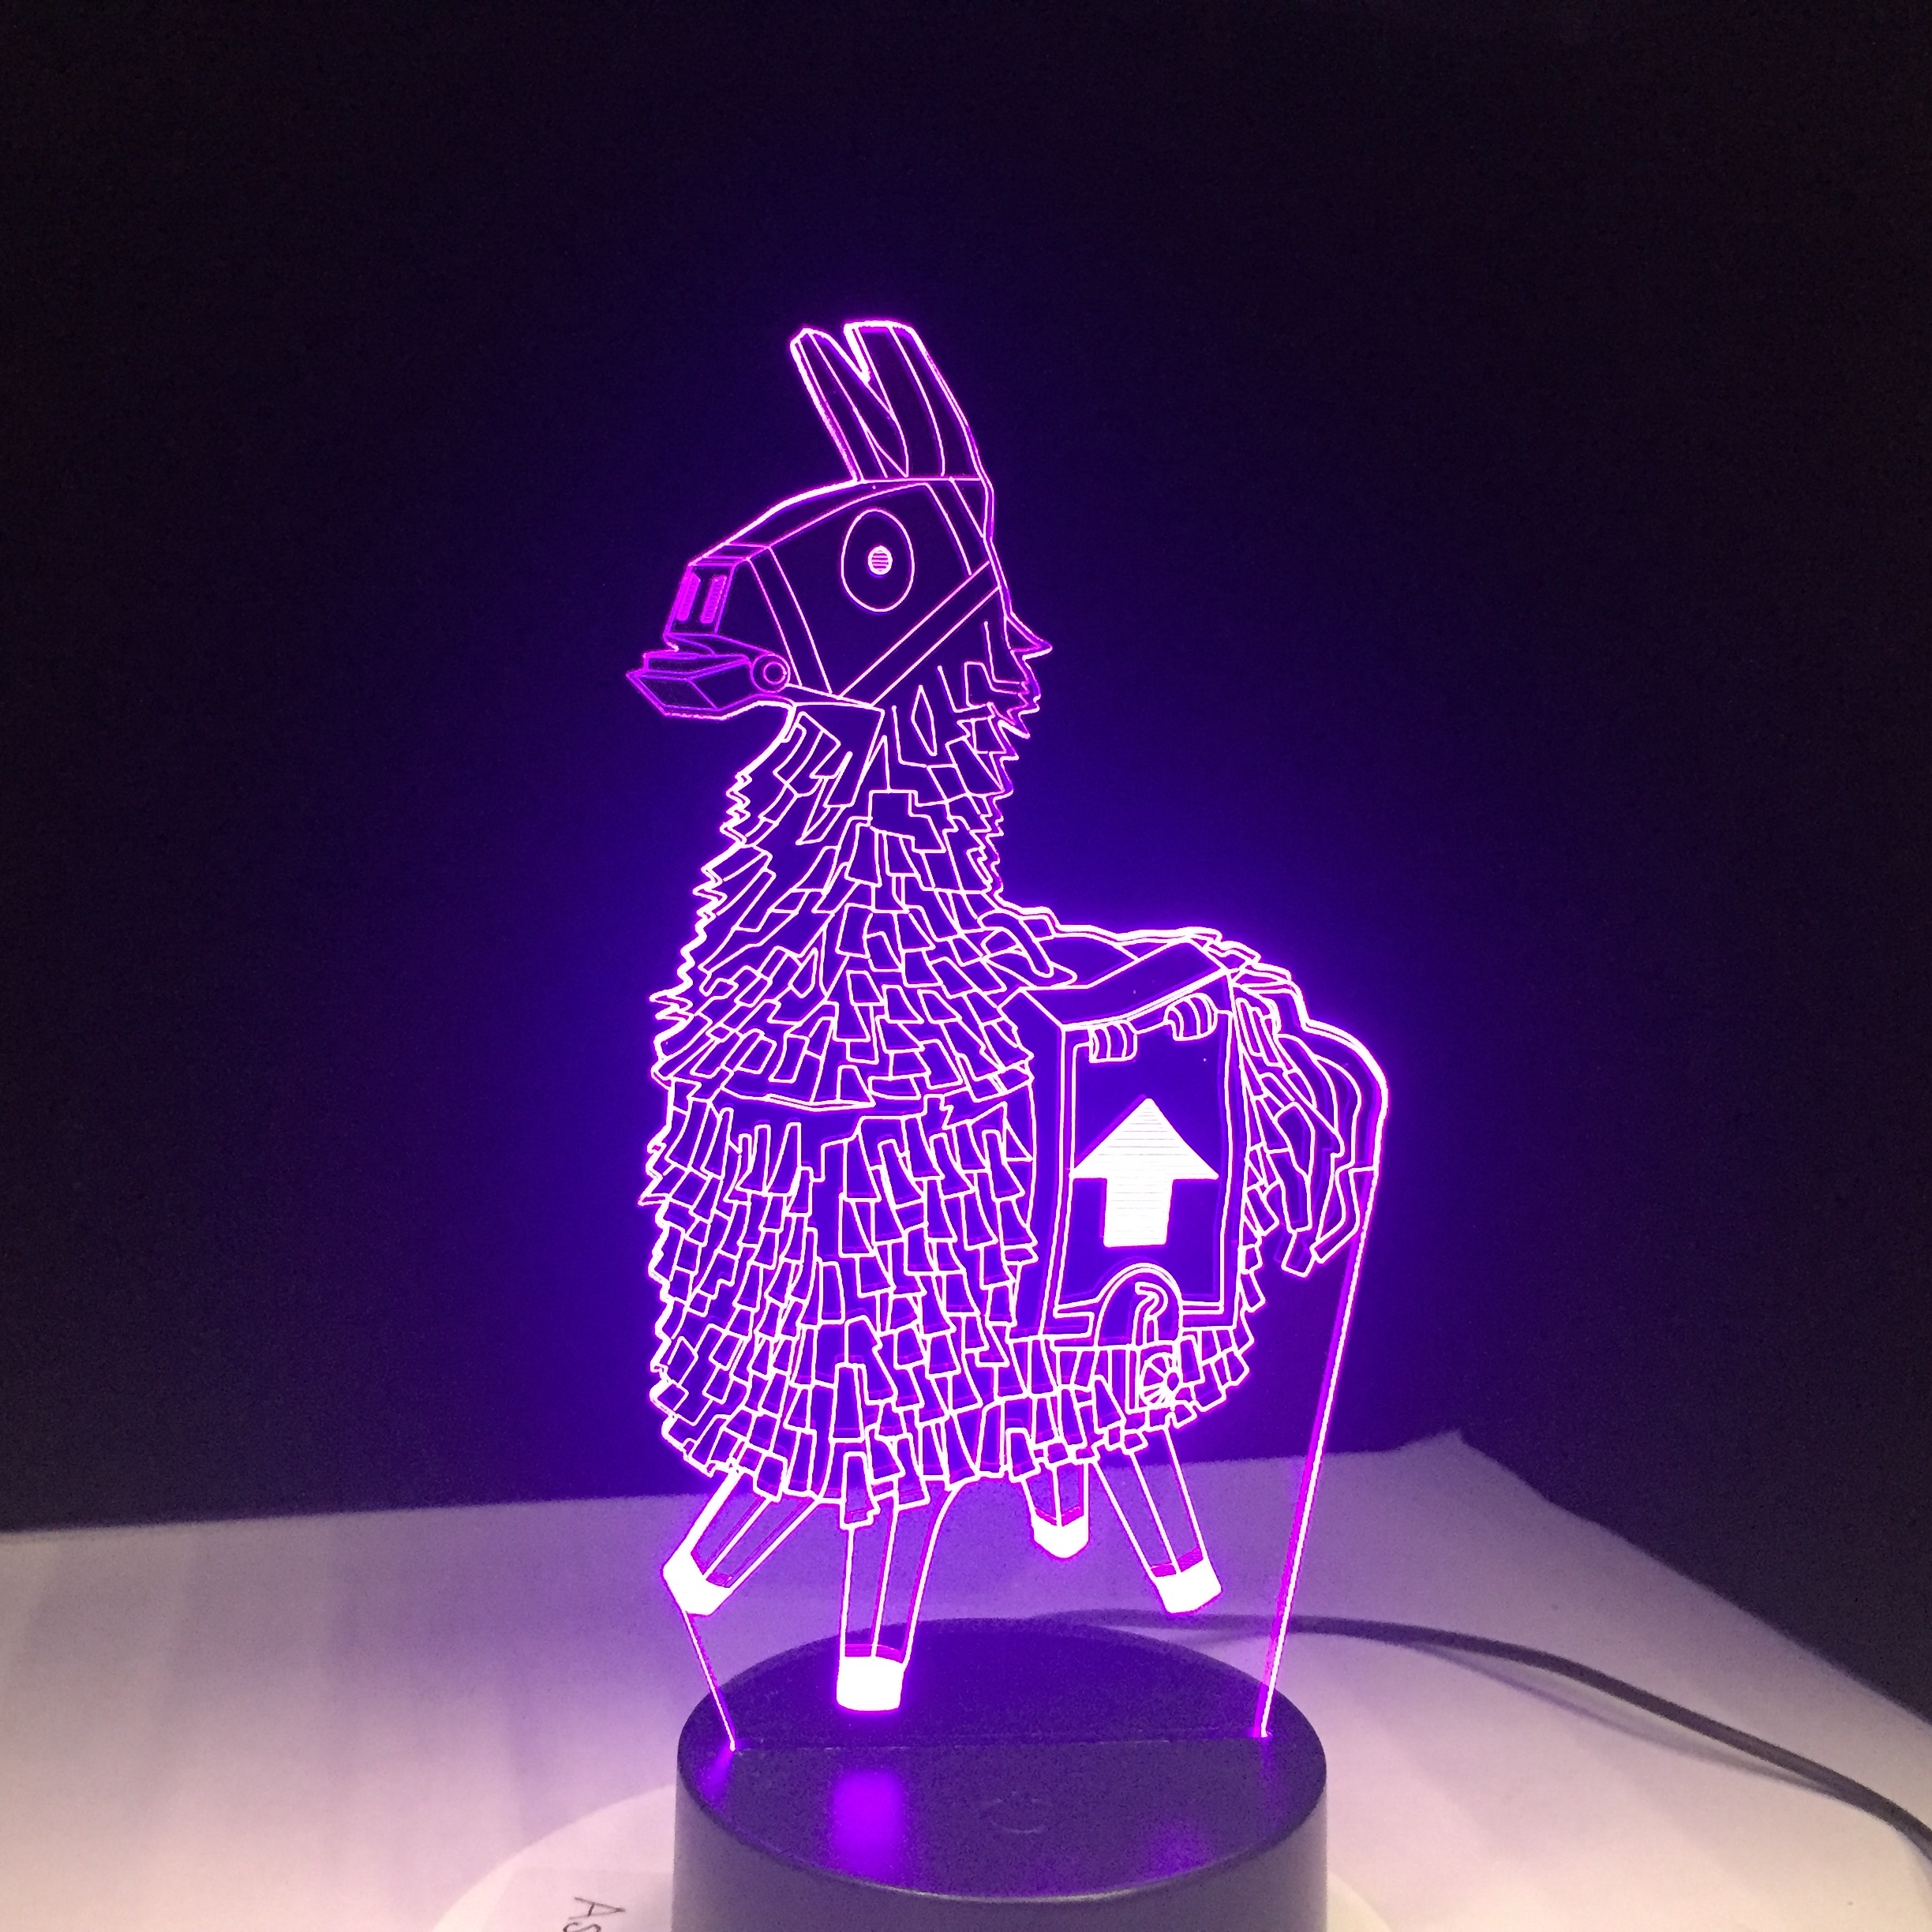 Stash Alpaca Llama Scar Chug Jug Reaper Glider Girl Skin 7 Colors 3D LED Lamp Night Light For Birthday Holiday Gift Dropshipping